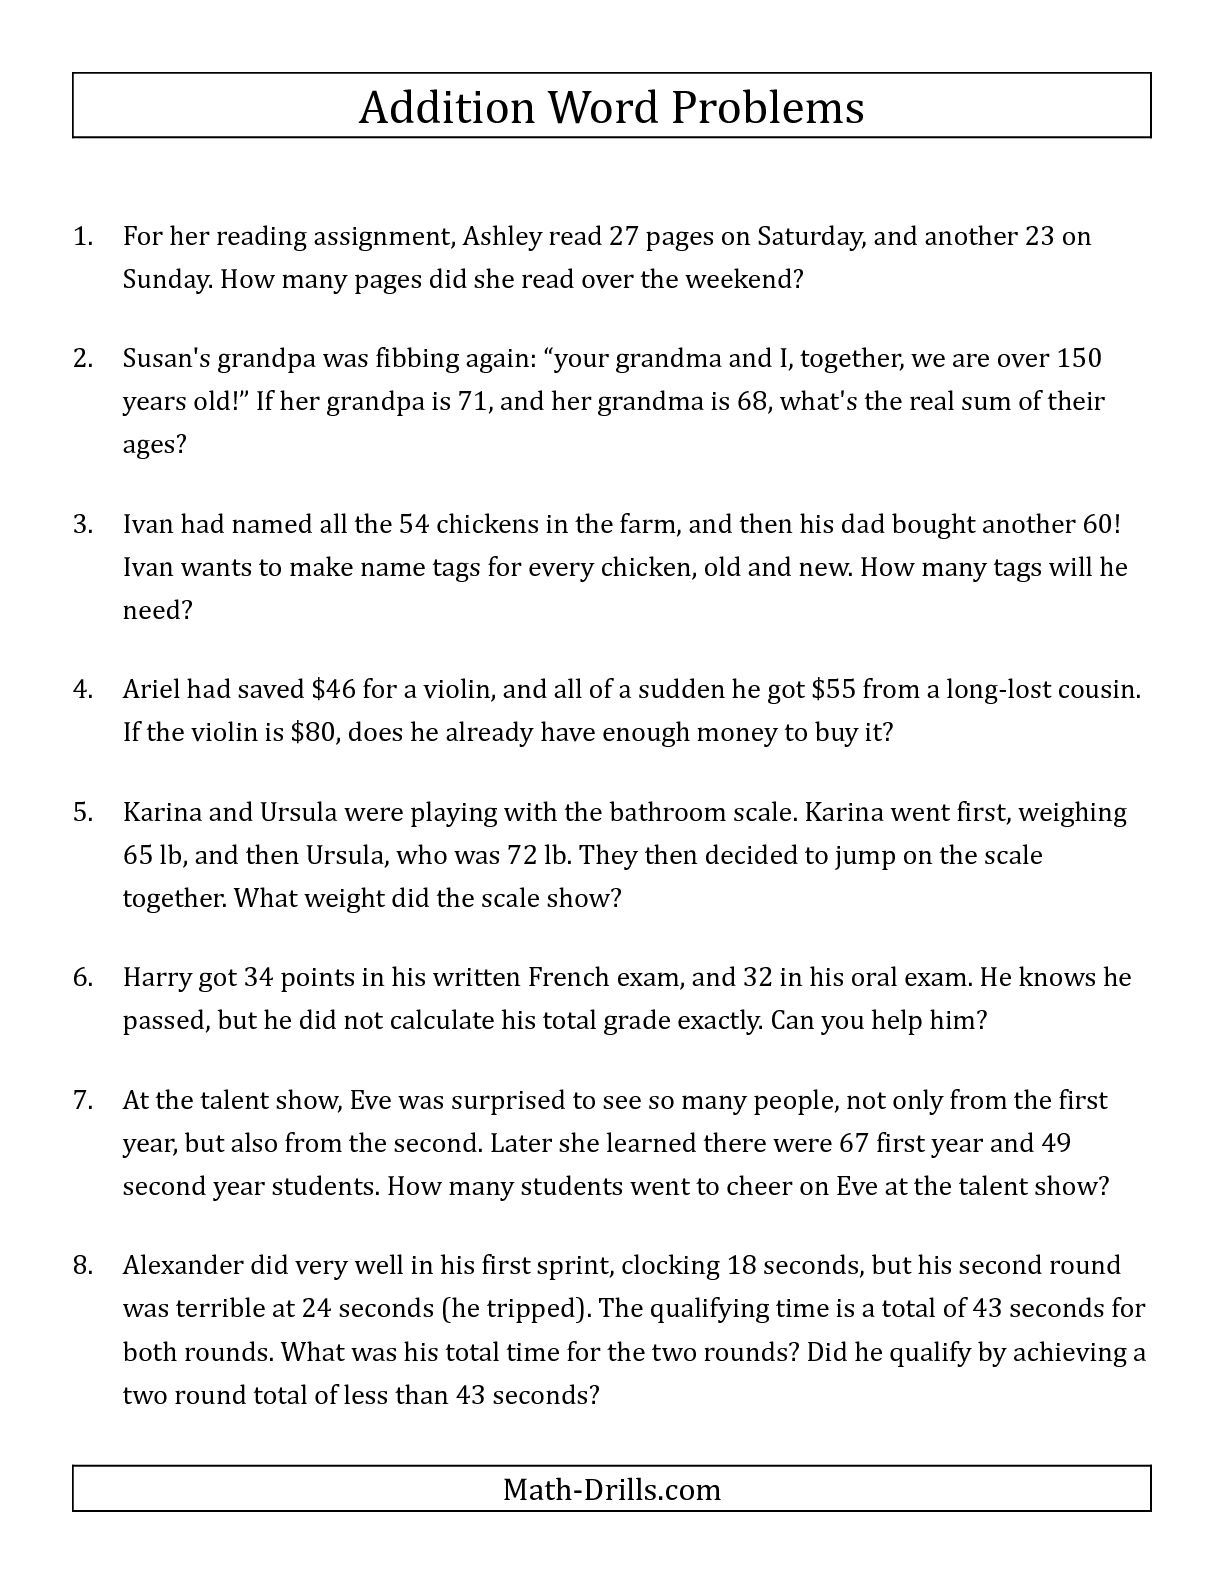 The Single-Step Addition Word Problems Using Two-Digit Numbers (A | Third Grade Math Word Problems Printable Worksheets